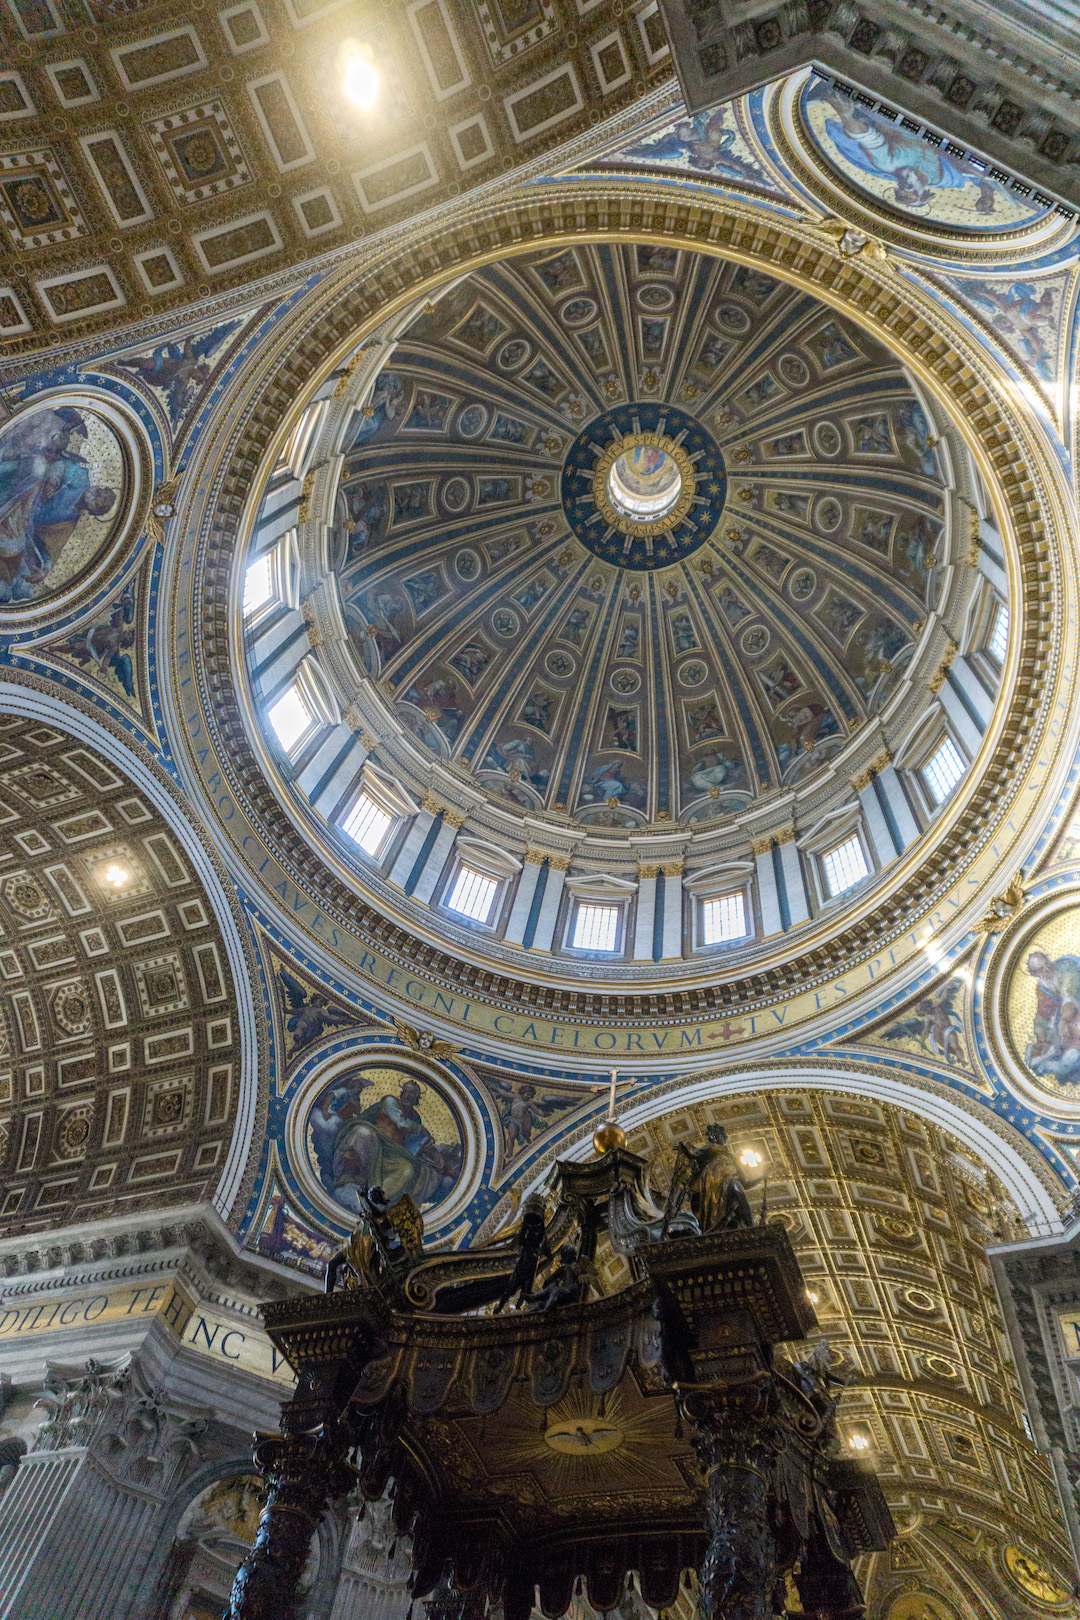 St Peters Dome Interior